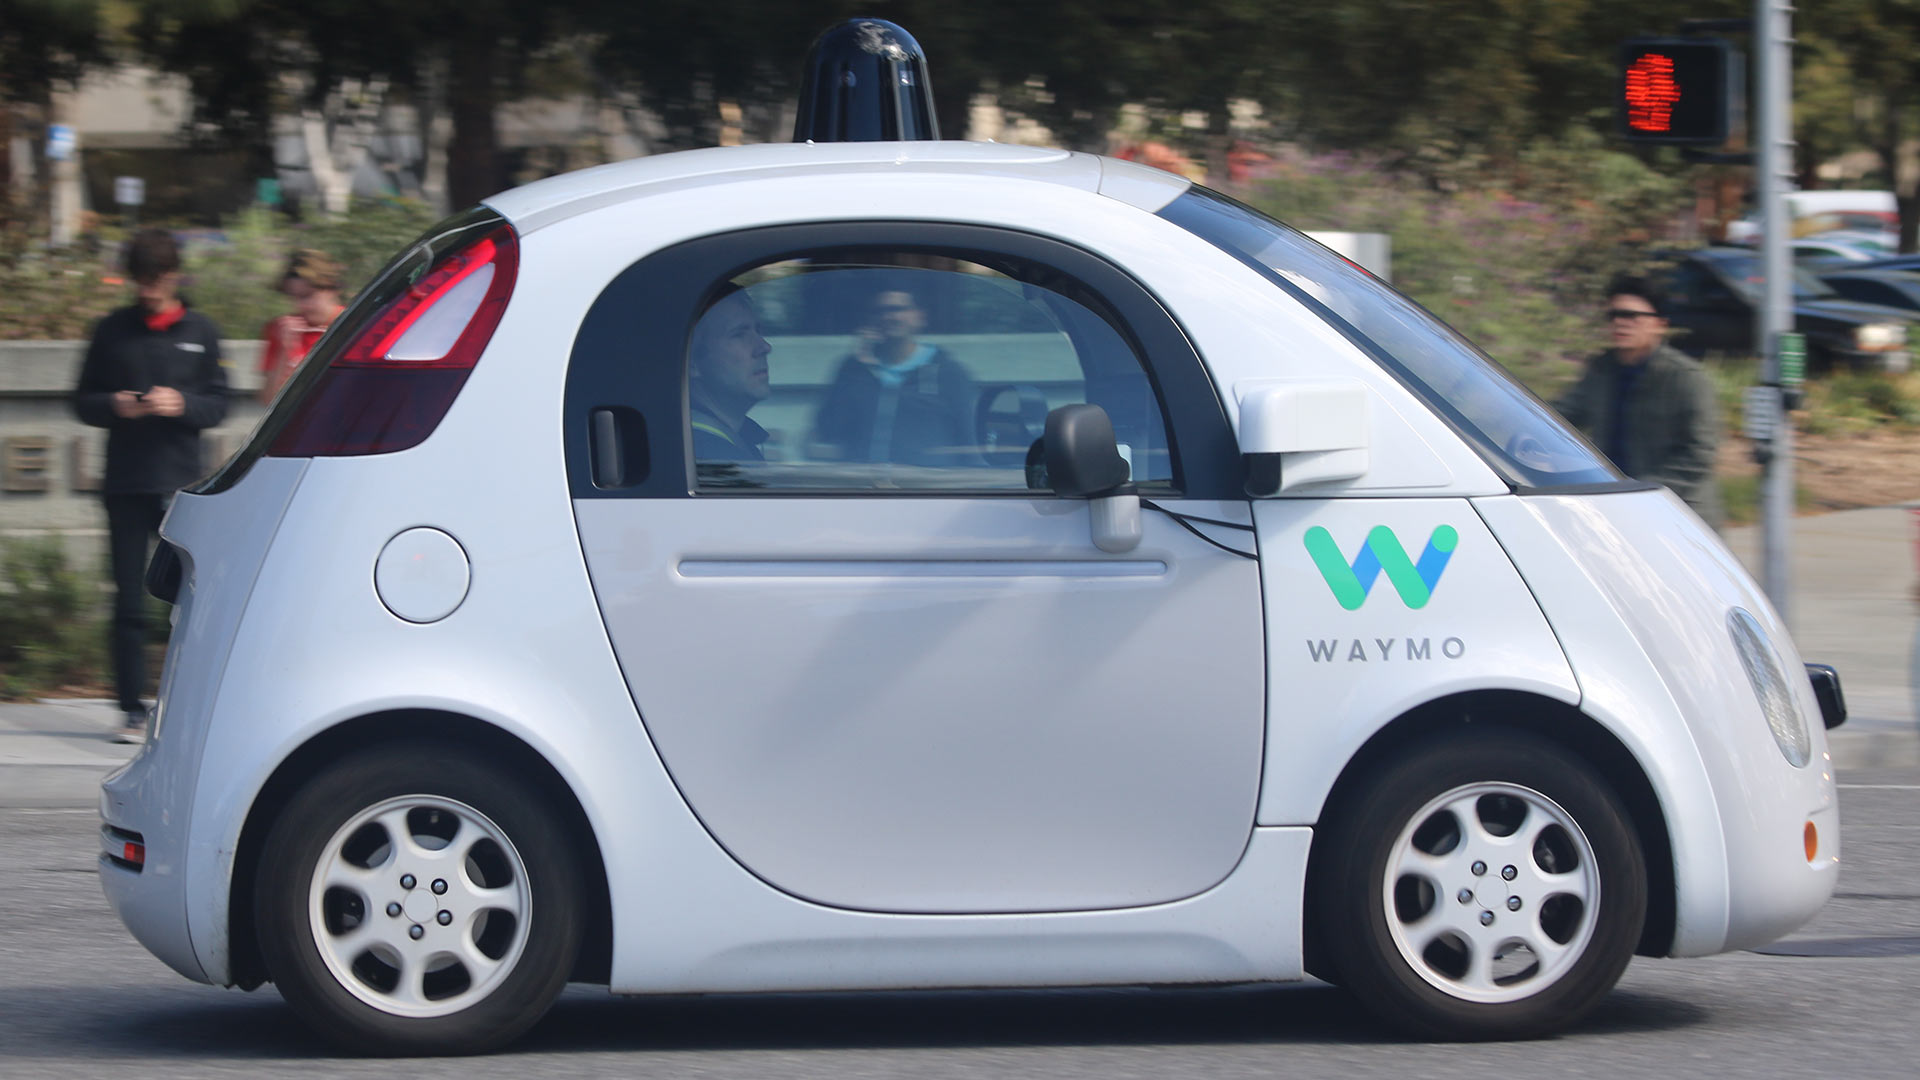 A Waymo self-driving car.